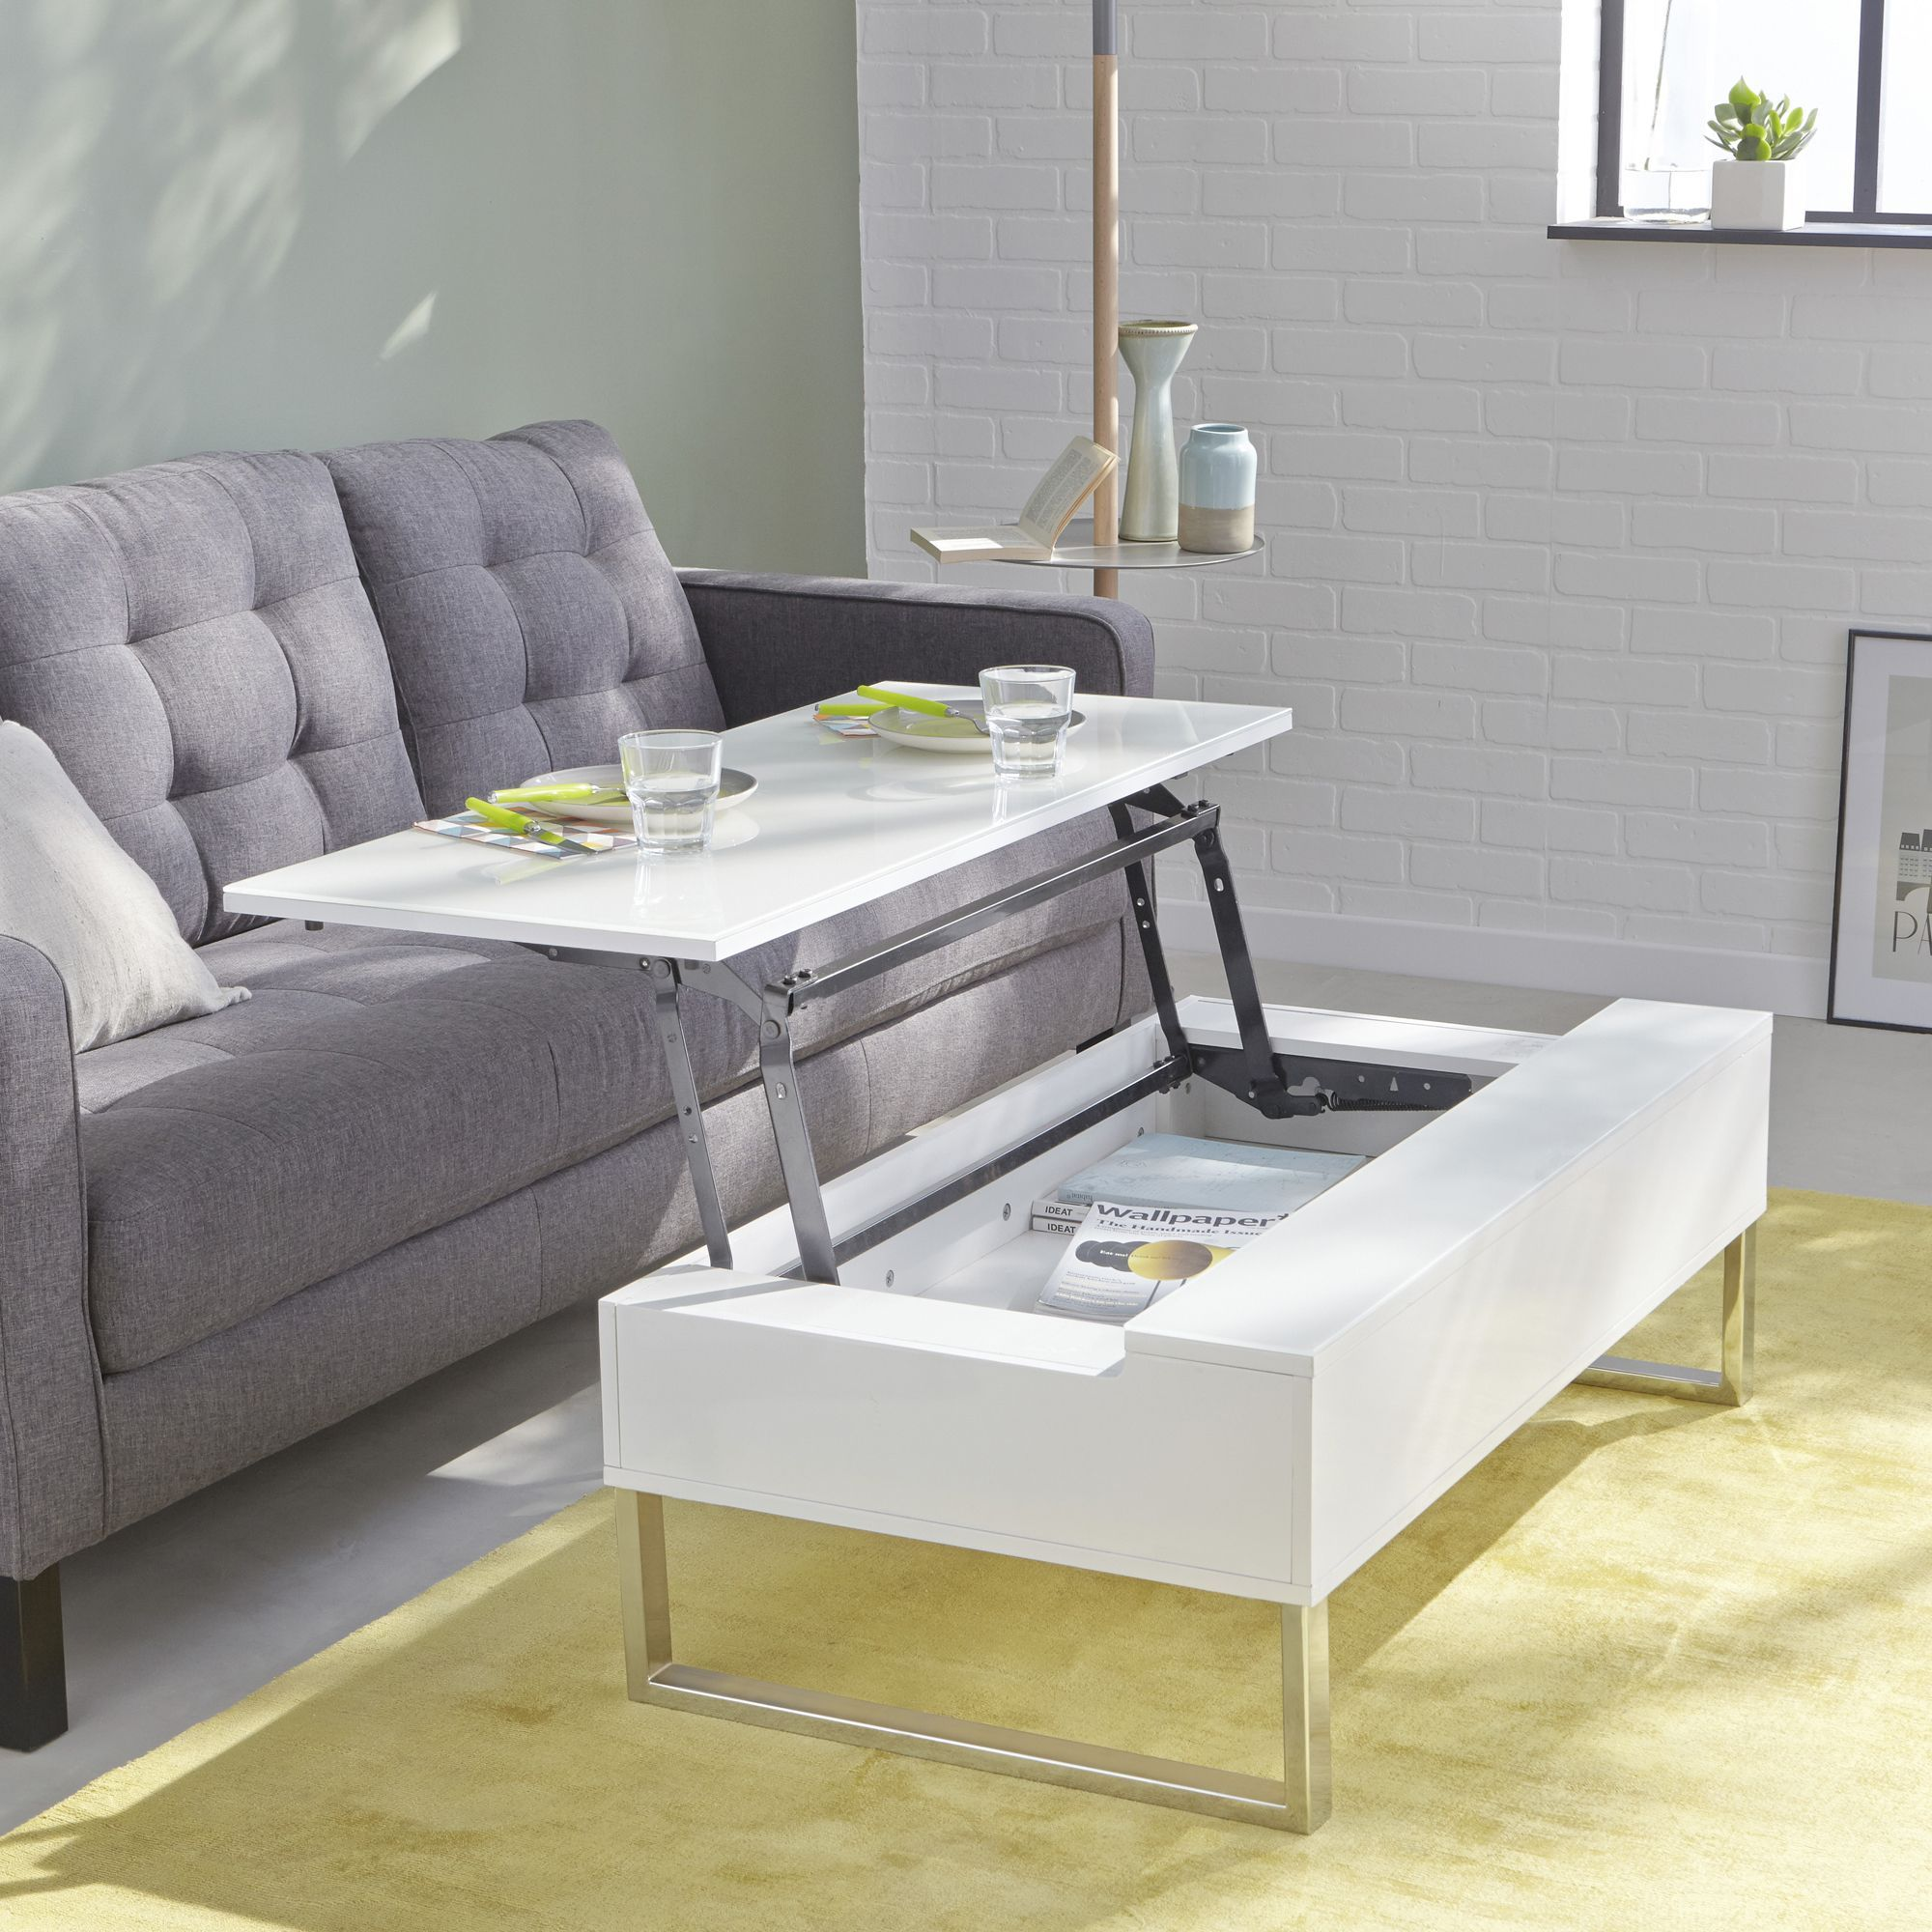 Table Basse Alinea Blanche